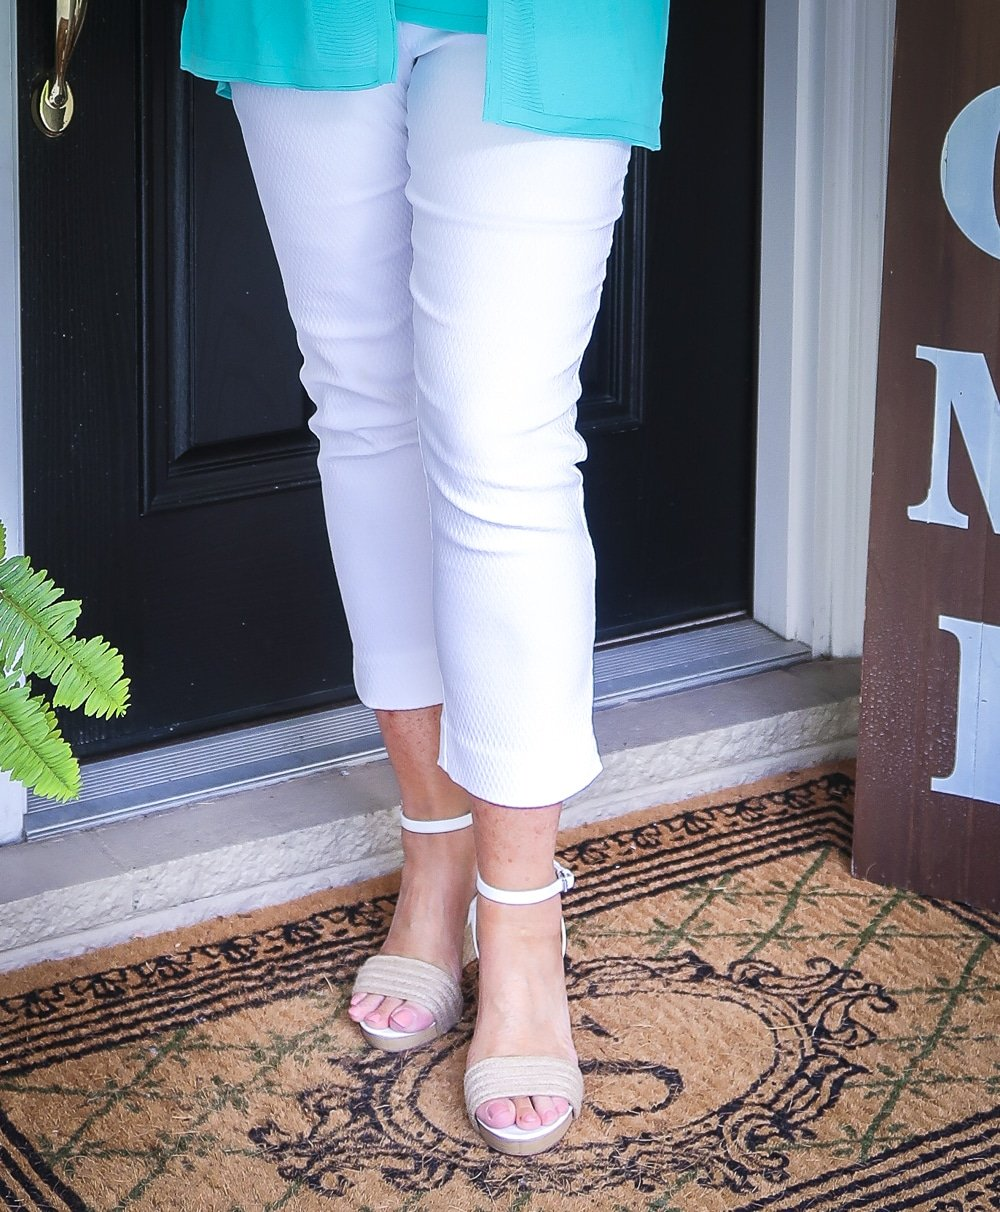 Fashion Blogger 50 Is Not Old is wearing a pair of white espadrilles and white crop pants from Chicos